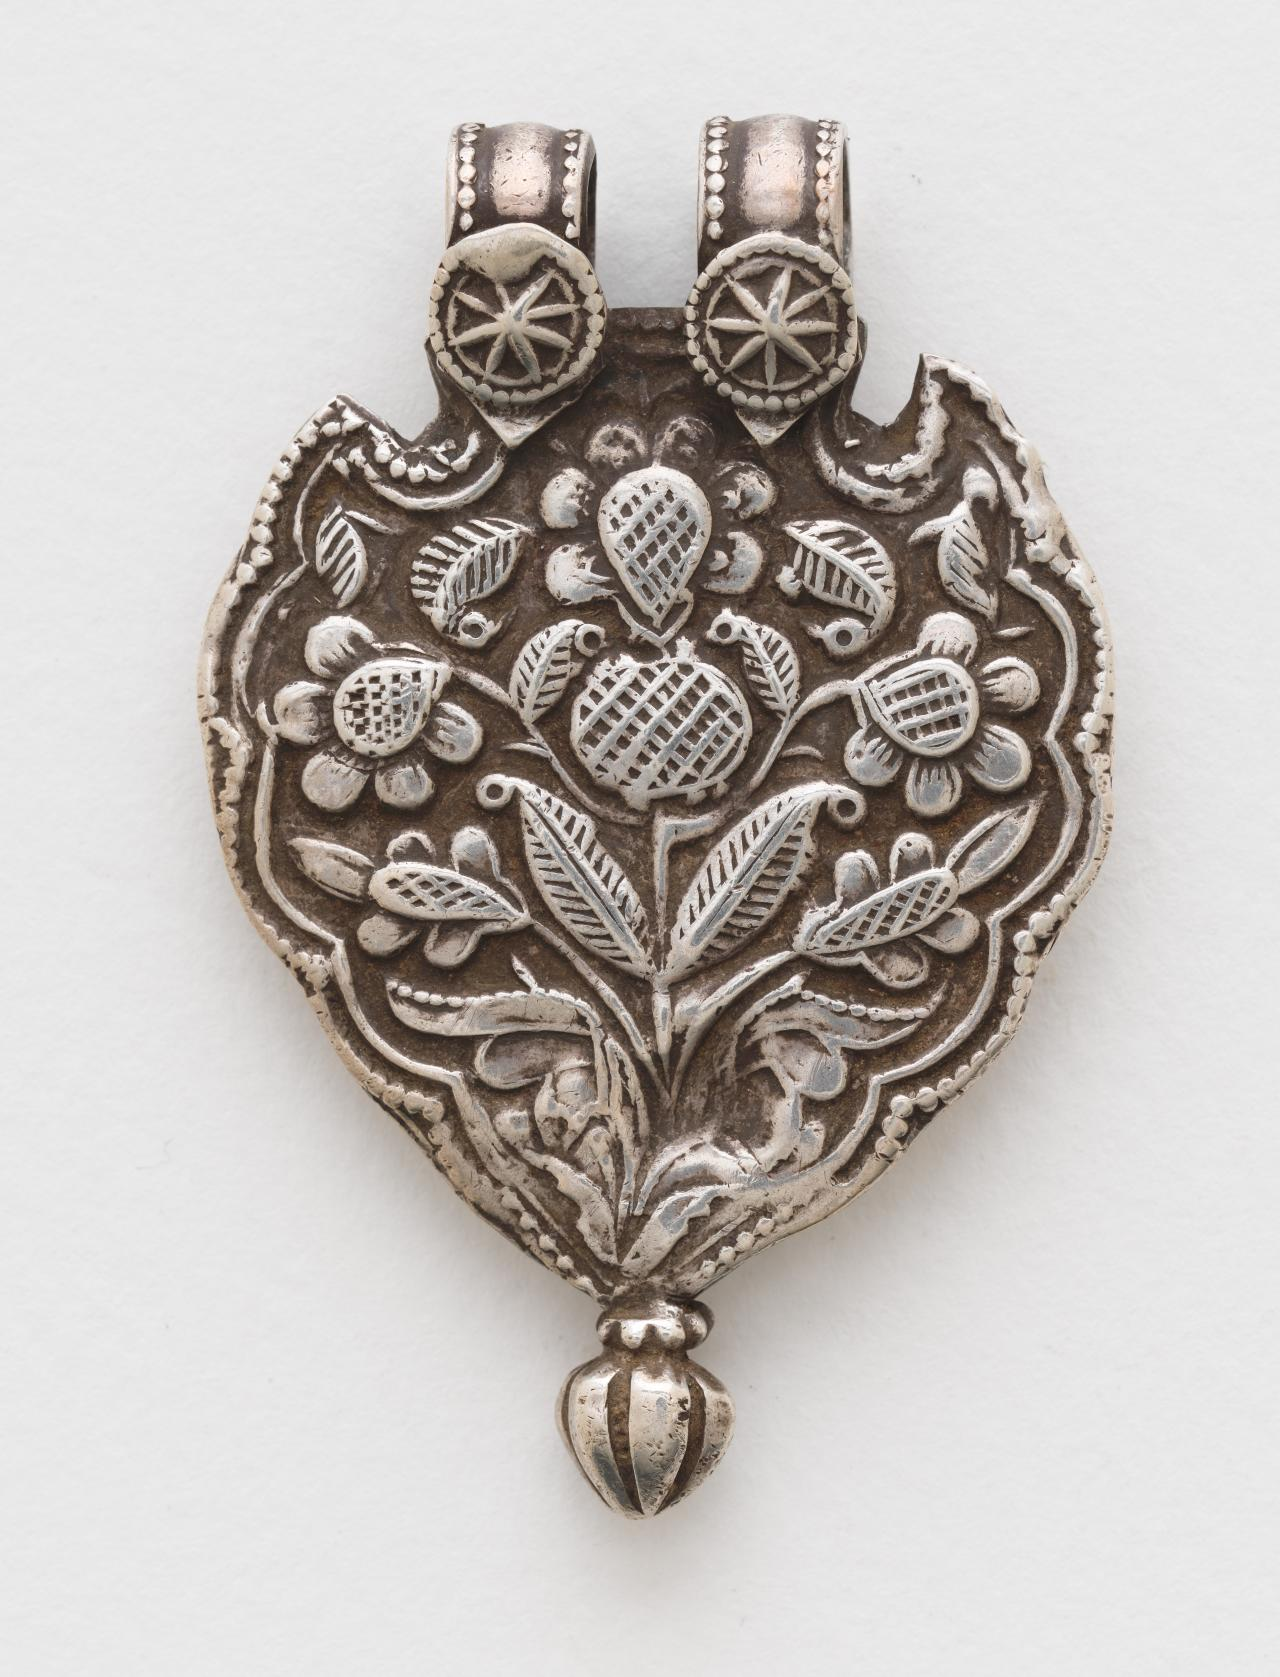 Pilgrimage and devotional pendant (Phul) with plant forms